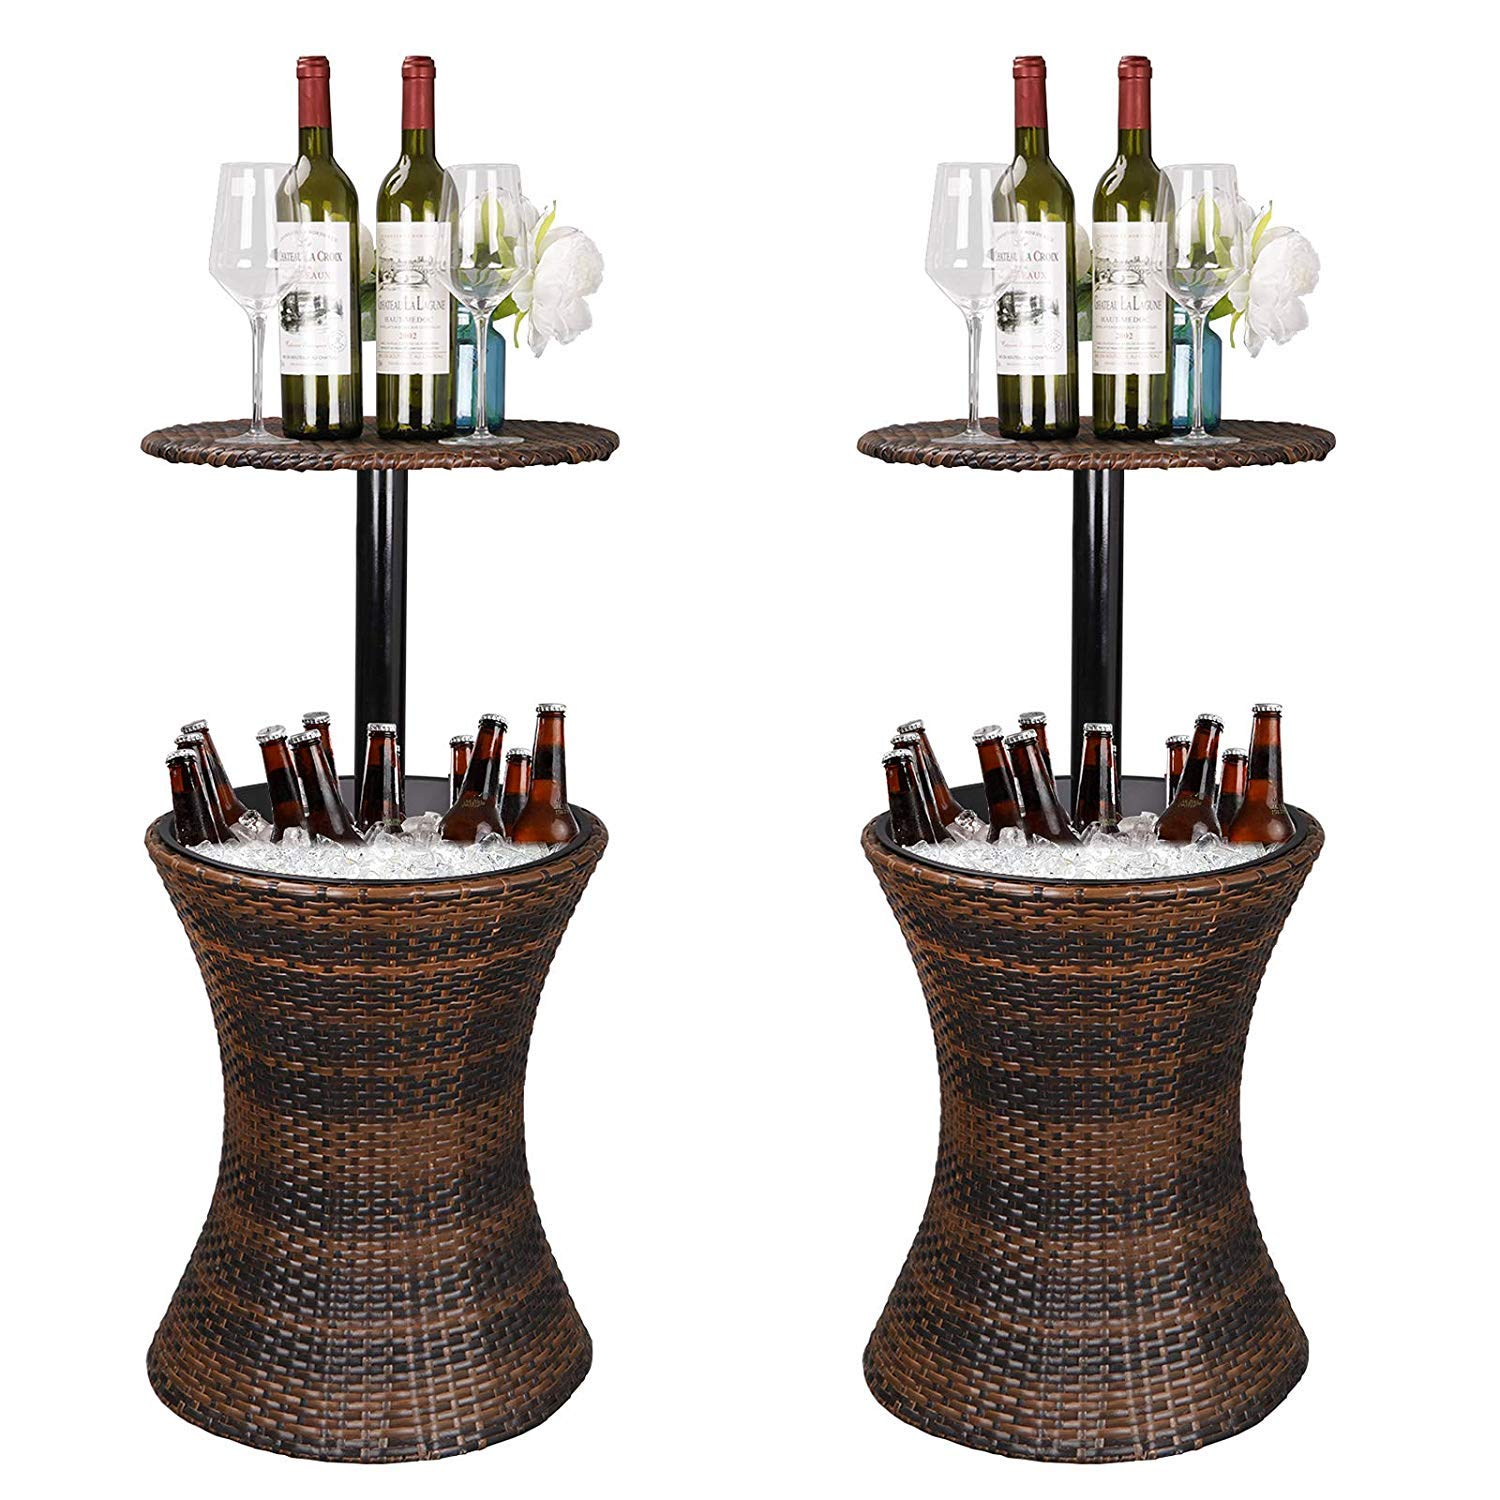 HomGarden Height Adjustable Cool Bar Rattan Style Wicker Ice Bucket Cocktail Coffee Cooler Table All in One - All-Weather Wicker Bar Table for Party, Pool, Patio, Deck, Backyard (Pack of 2)